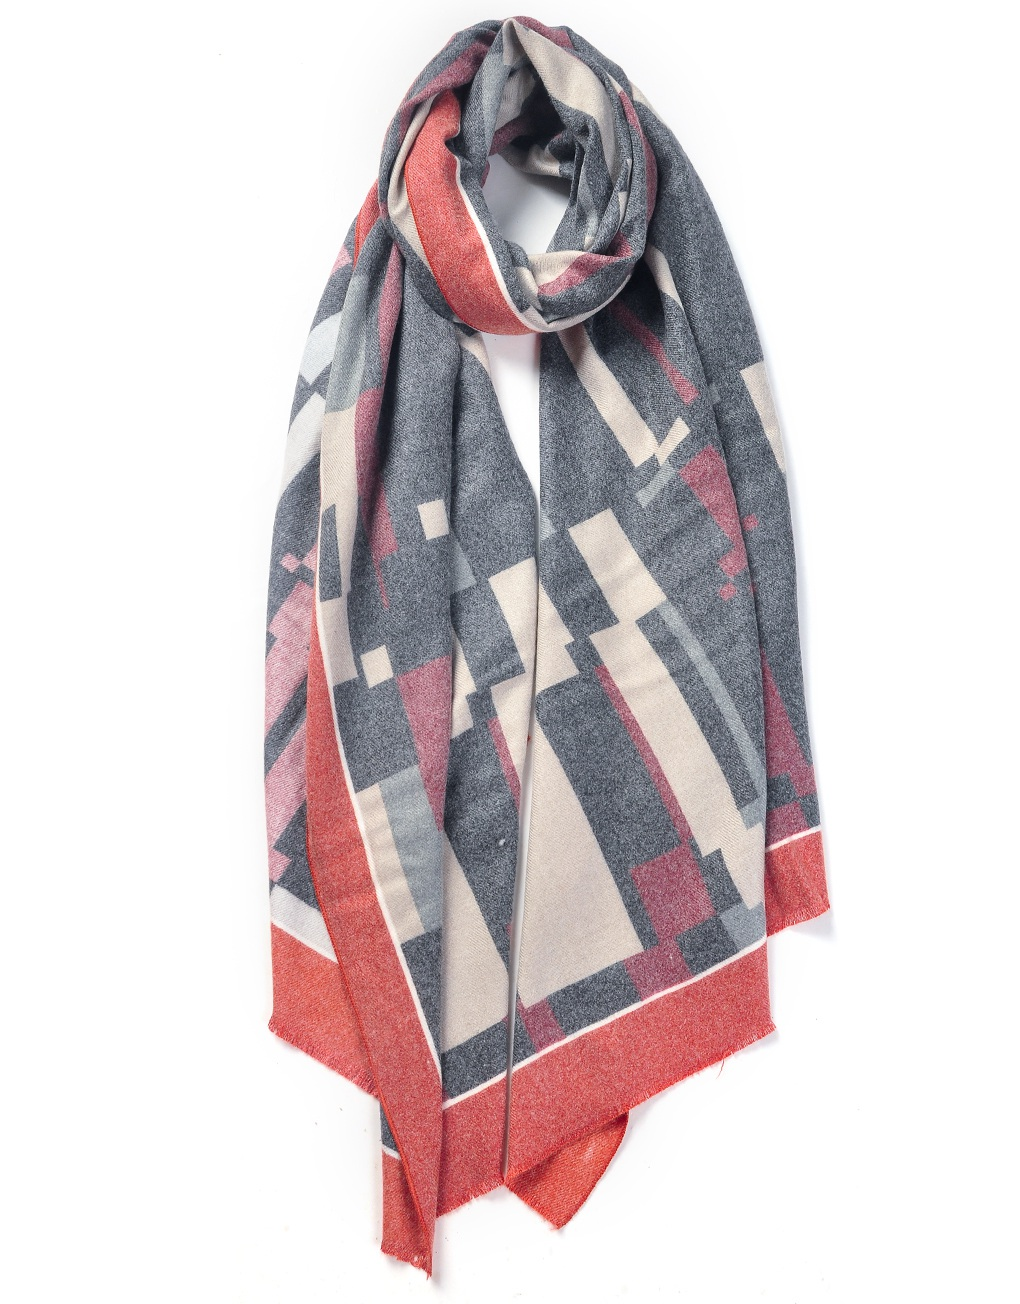 cool geometric maze patterned printed scarf